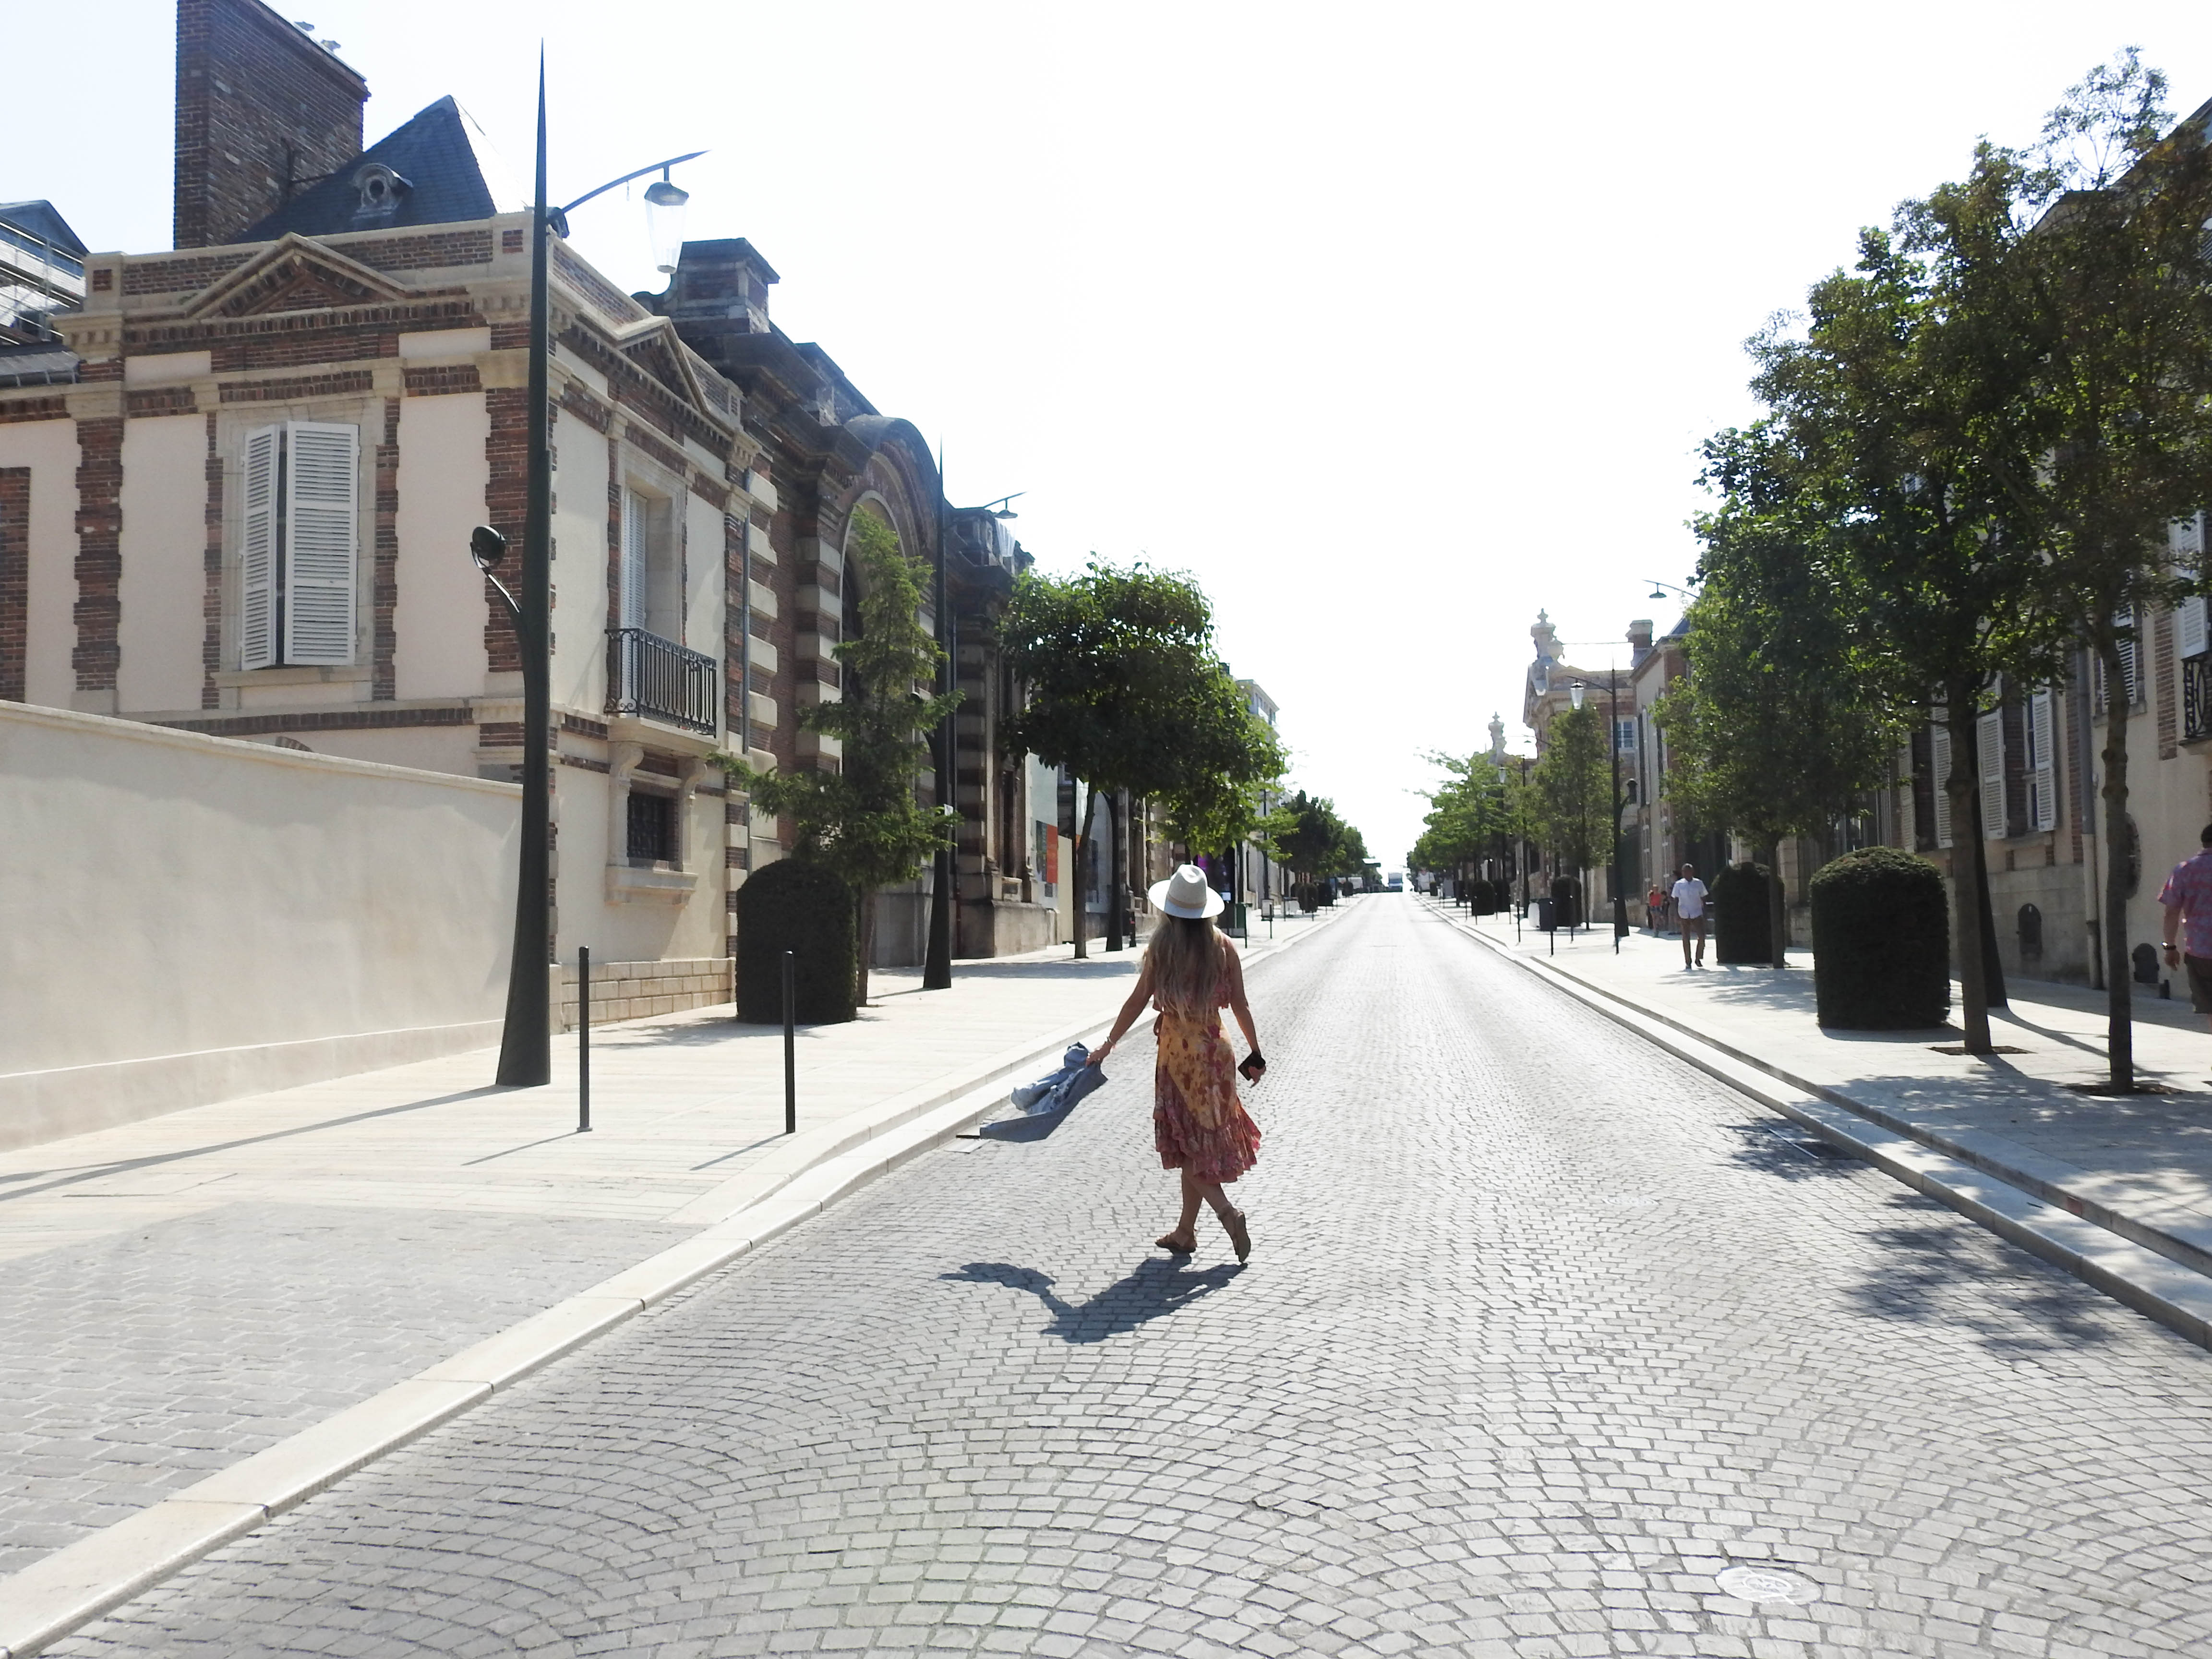 Streets of Epernay